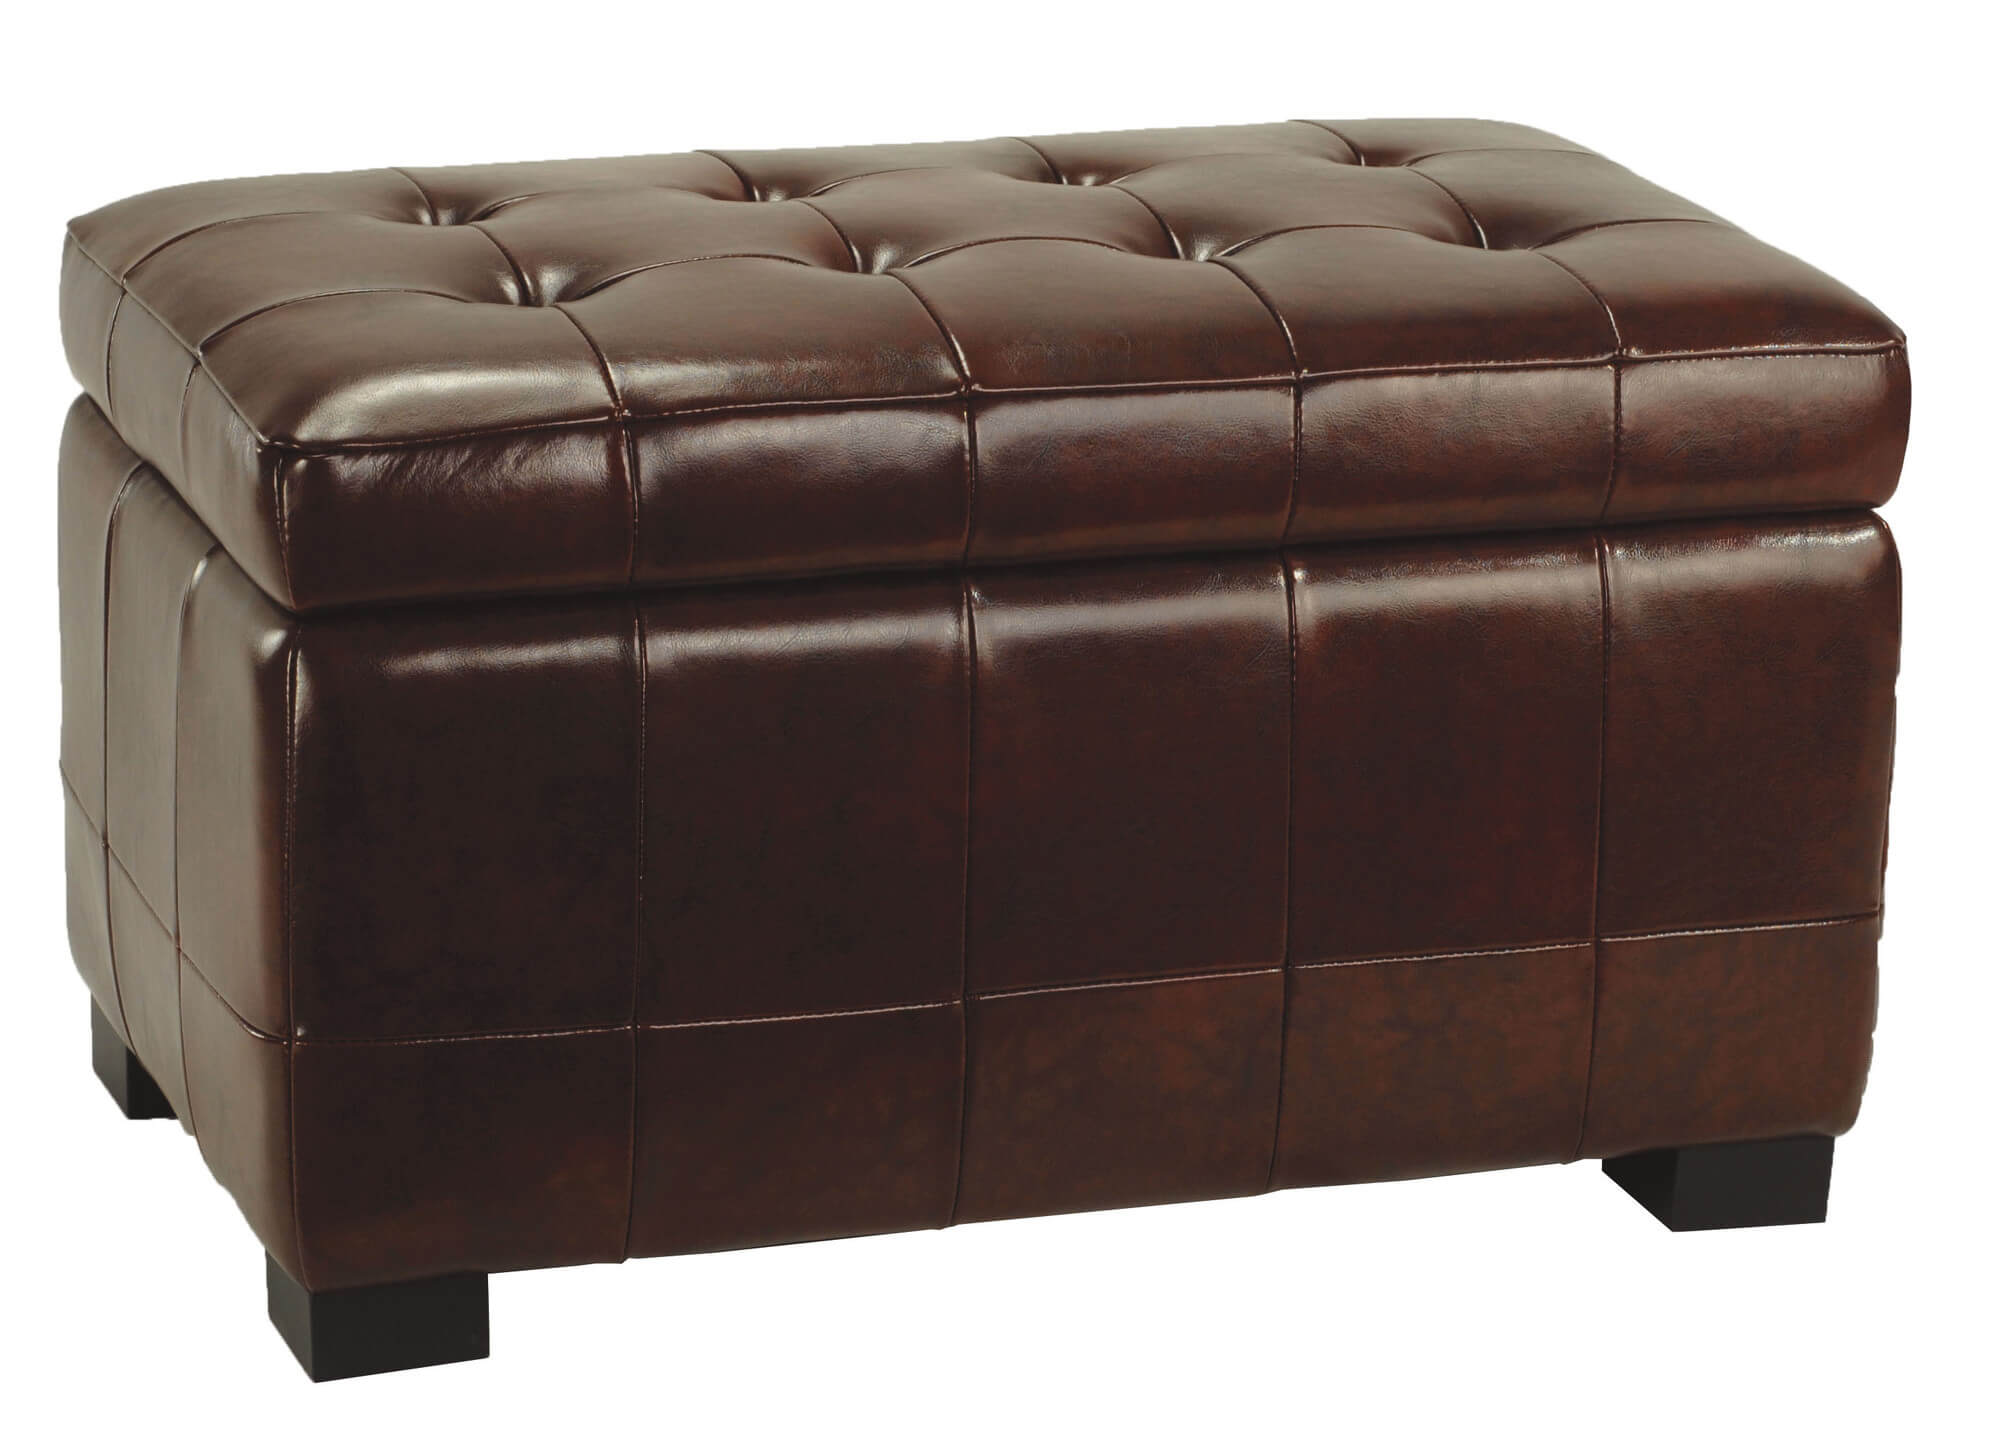 Large beechwood ottoman from Safavieh is clad in leather and features hinged cushion lid for storage .  sc 1 st  Home Stratosphere & 36 Top Brown Leather Ottoman Coffee Tables islam-shia.org